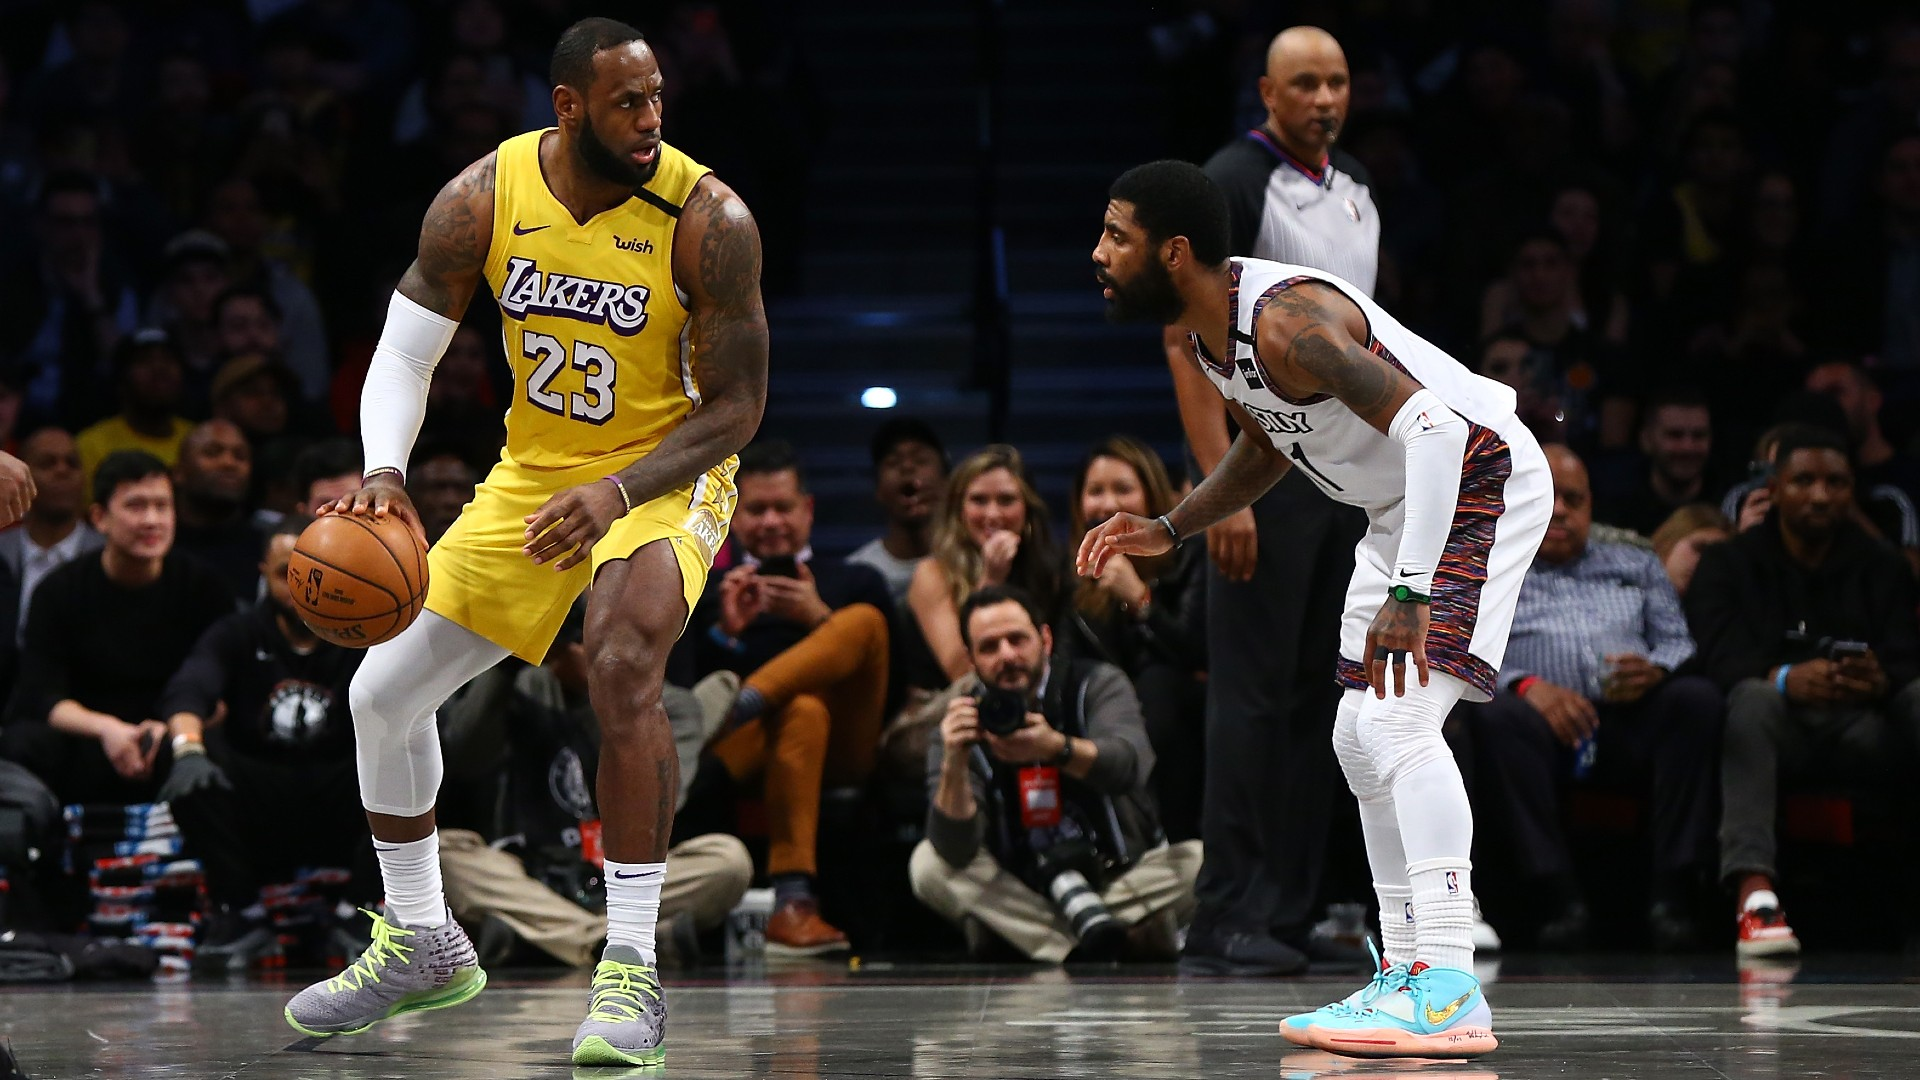 Floor microphones catch Nets' Kyrie Irving trolling Lakers, LeBron James after missed free throw